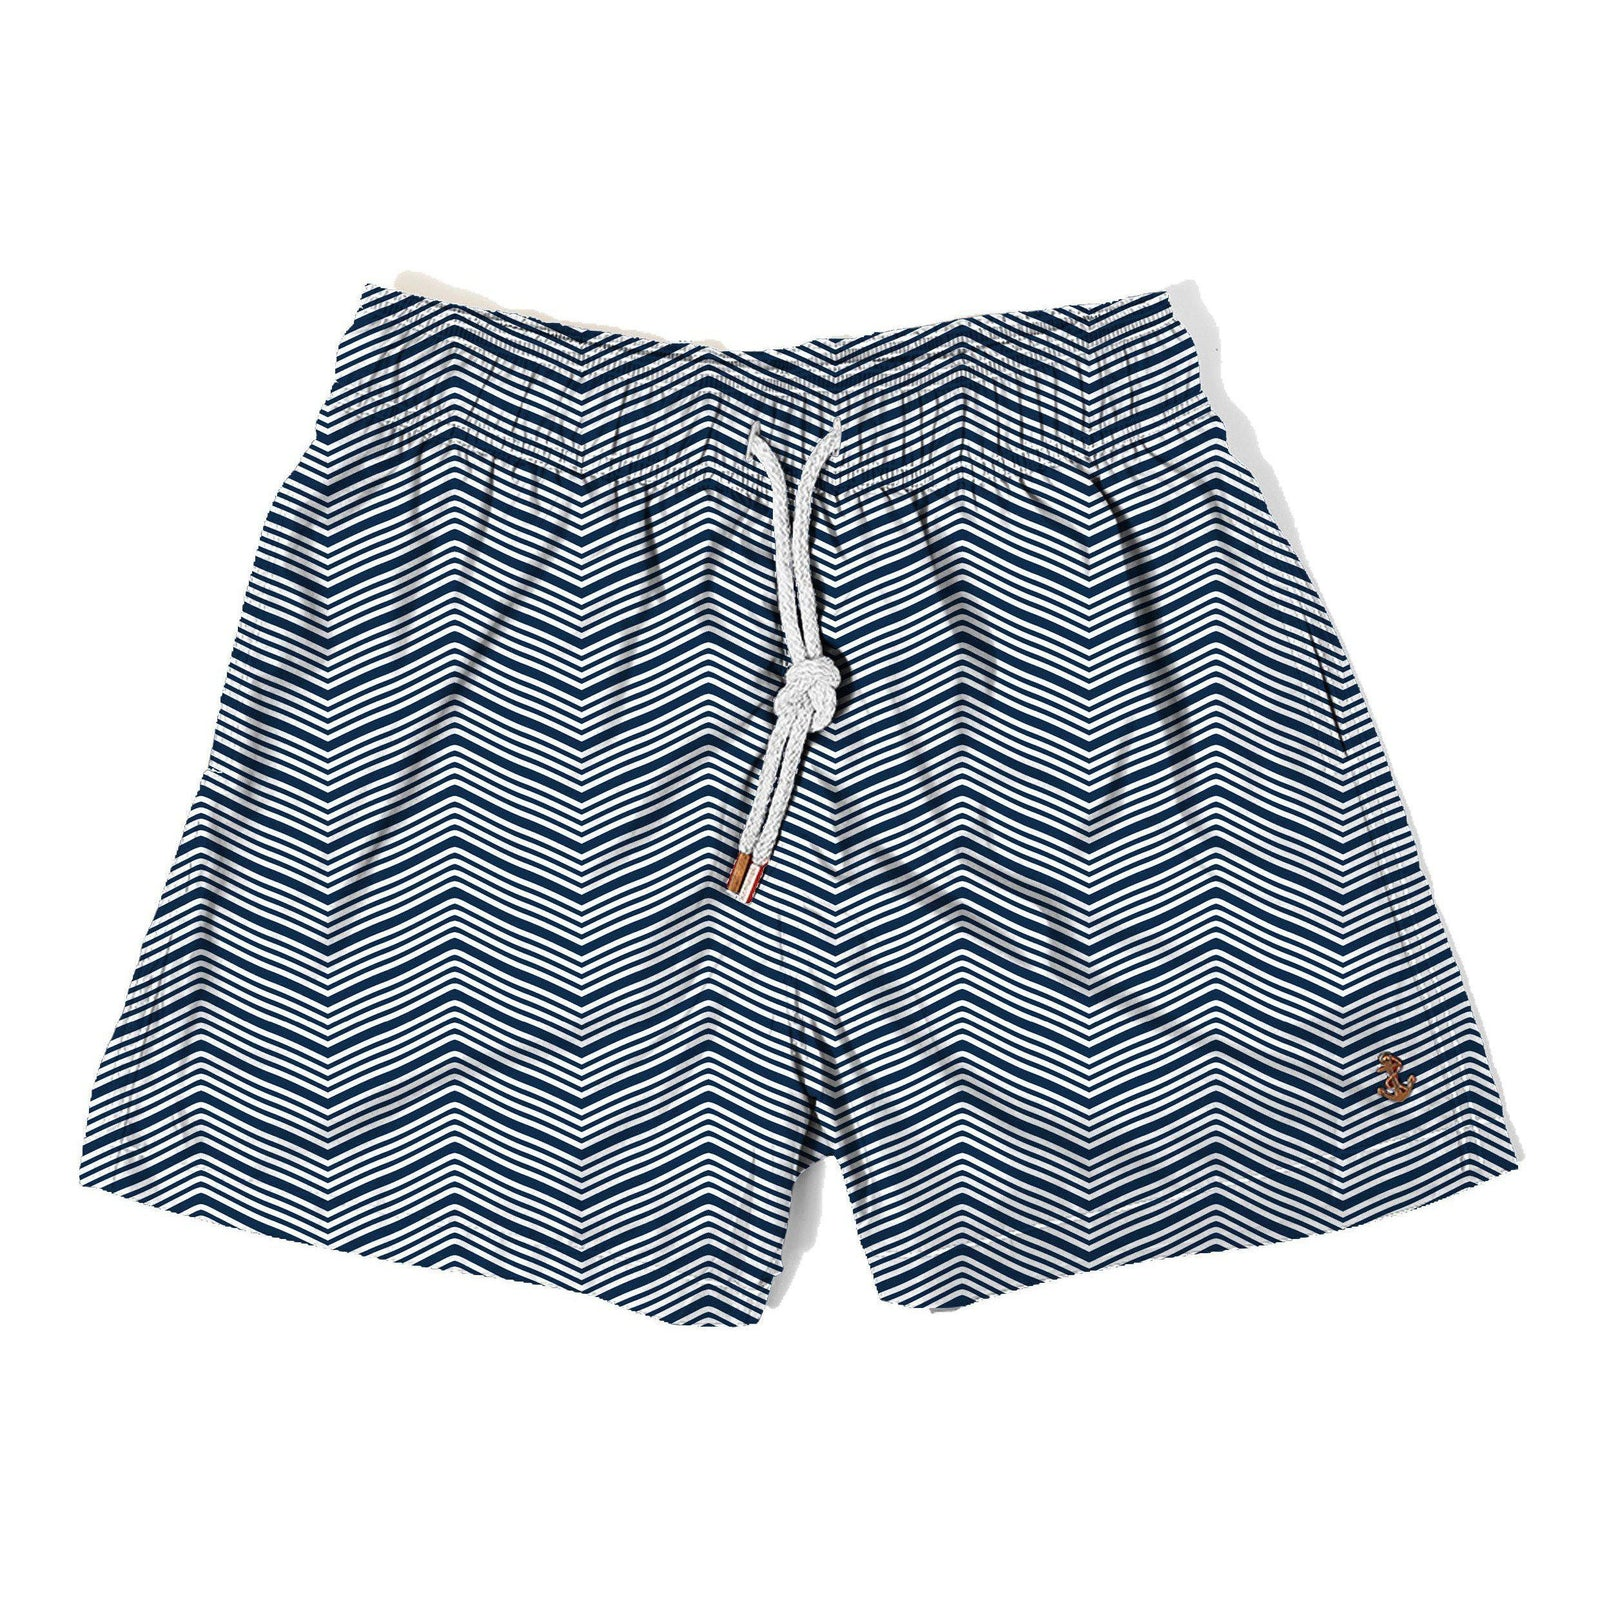 1ec034581b Men's Luxury Swimwear - Retro Swimwear | Retromarine NYC